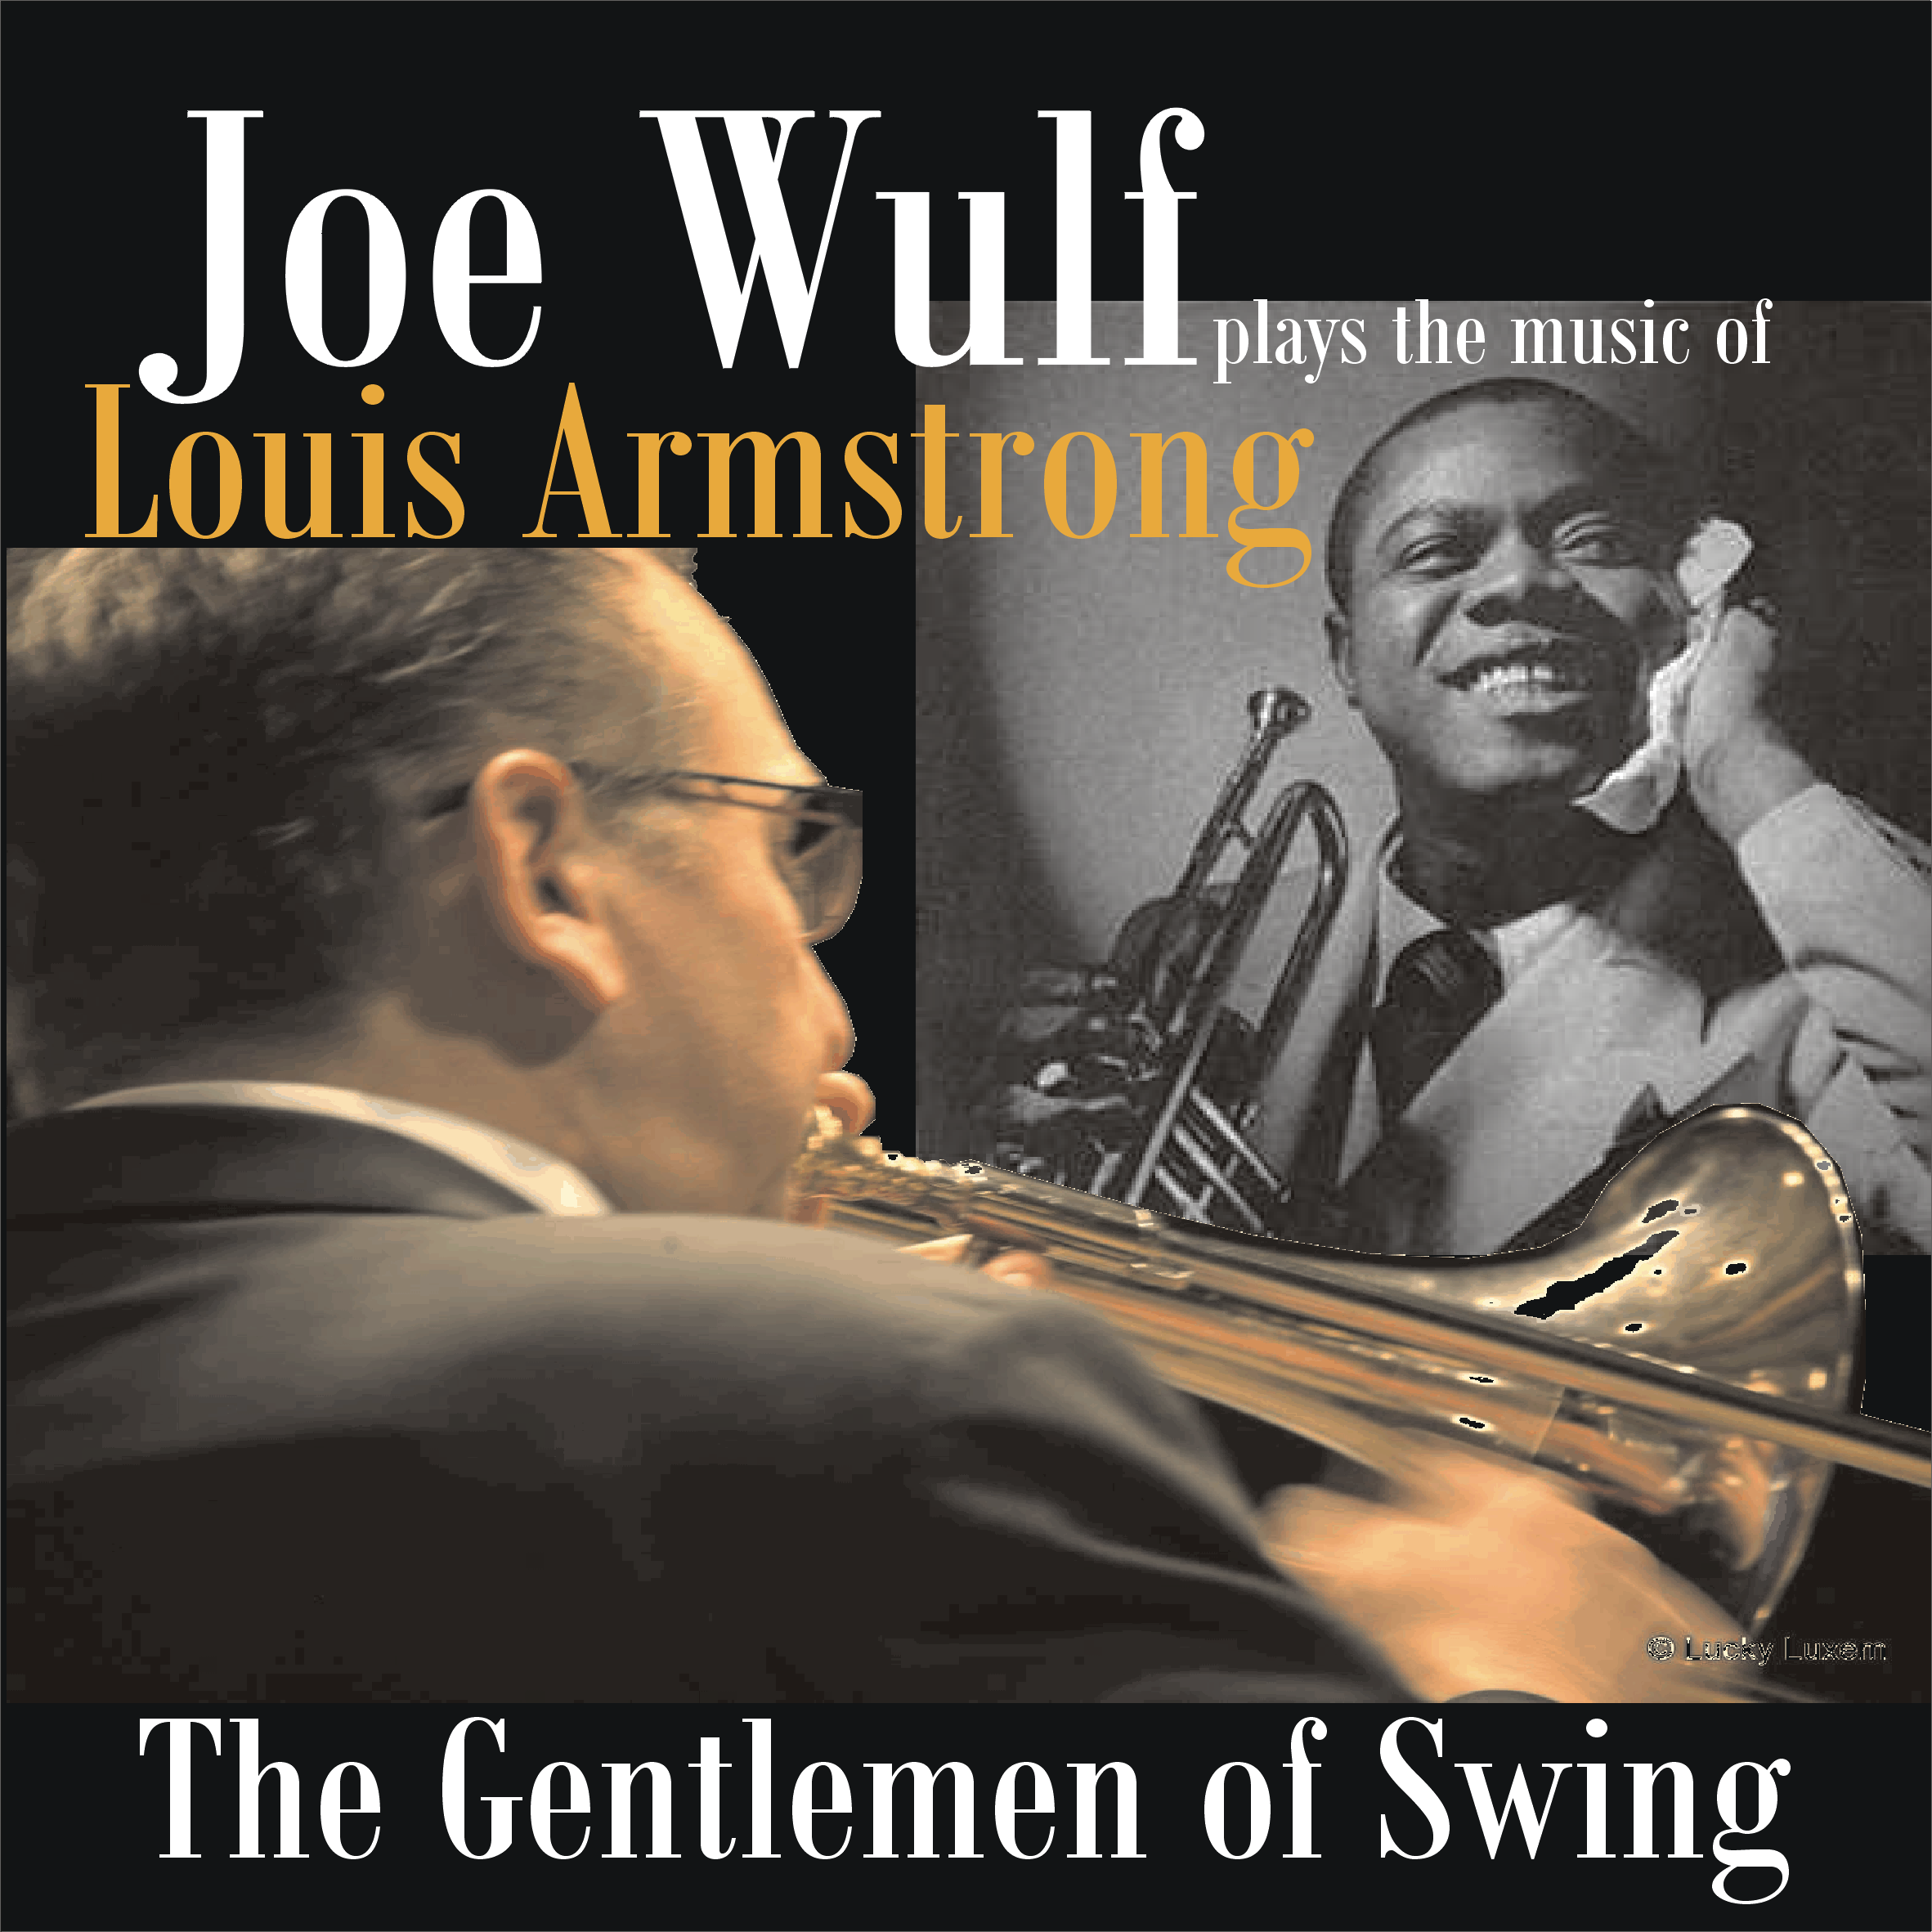 Joe Wulf plays Louis Armstrong